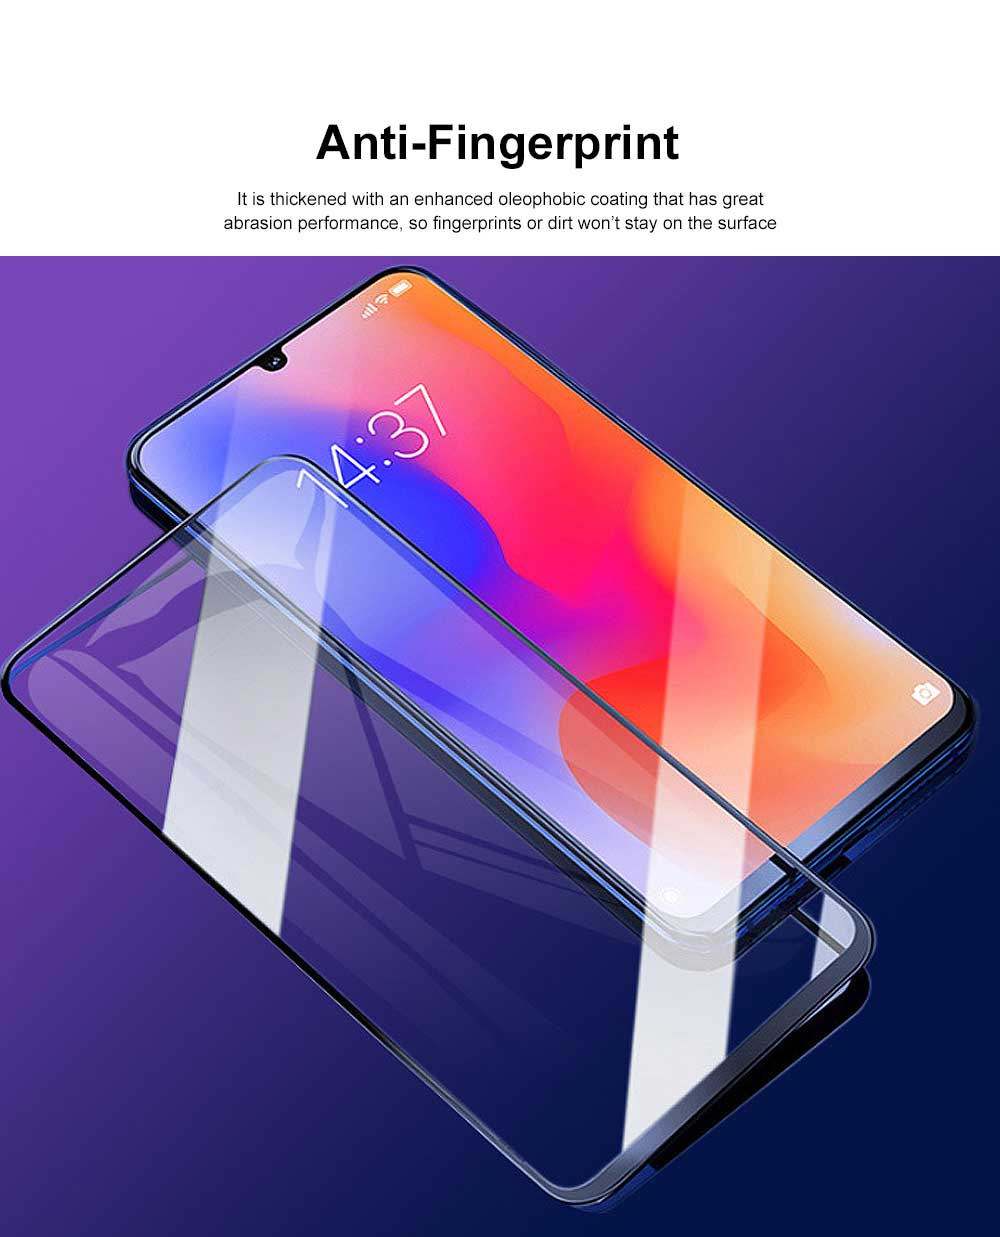 Tempered Glass Screen Protector Full Screen Coverage, Anti-Fingerprint Bubble Free Protector for iPhone X or XS, iPhone XR, iPhone XS Max, iPhone7 or 8, iPhone 7 or 8 plus, iPhone 6 or 6S, iPhone 6S plus 4